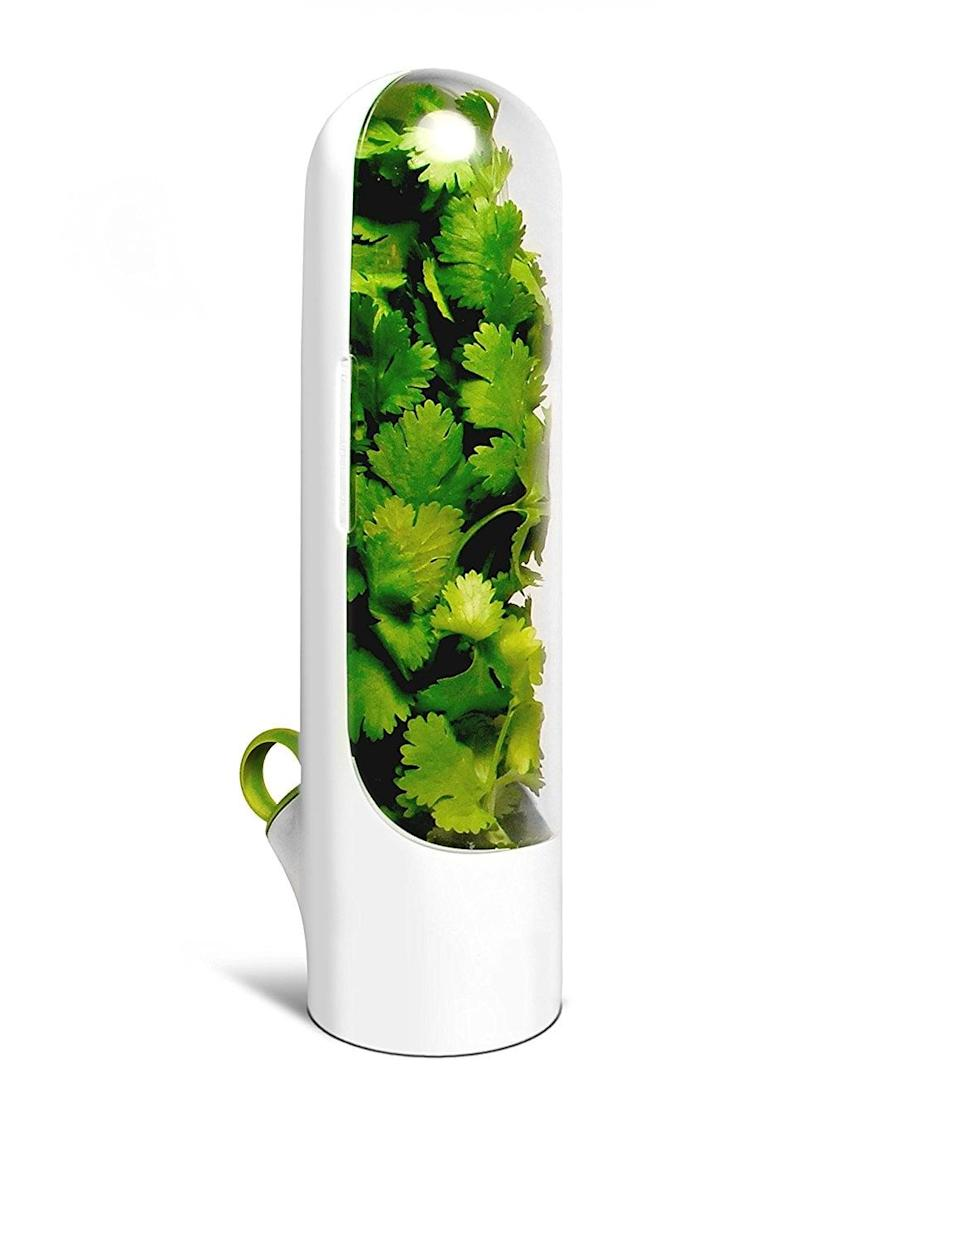 <p>Make sure herbs stay as fresh as possible with this <span>Herb Saver Best Keeper</span> ($18). Simply refill it with water every three to five days, and the herbs will last longer.</p>